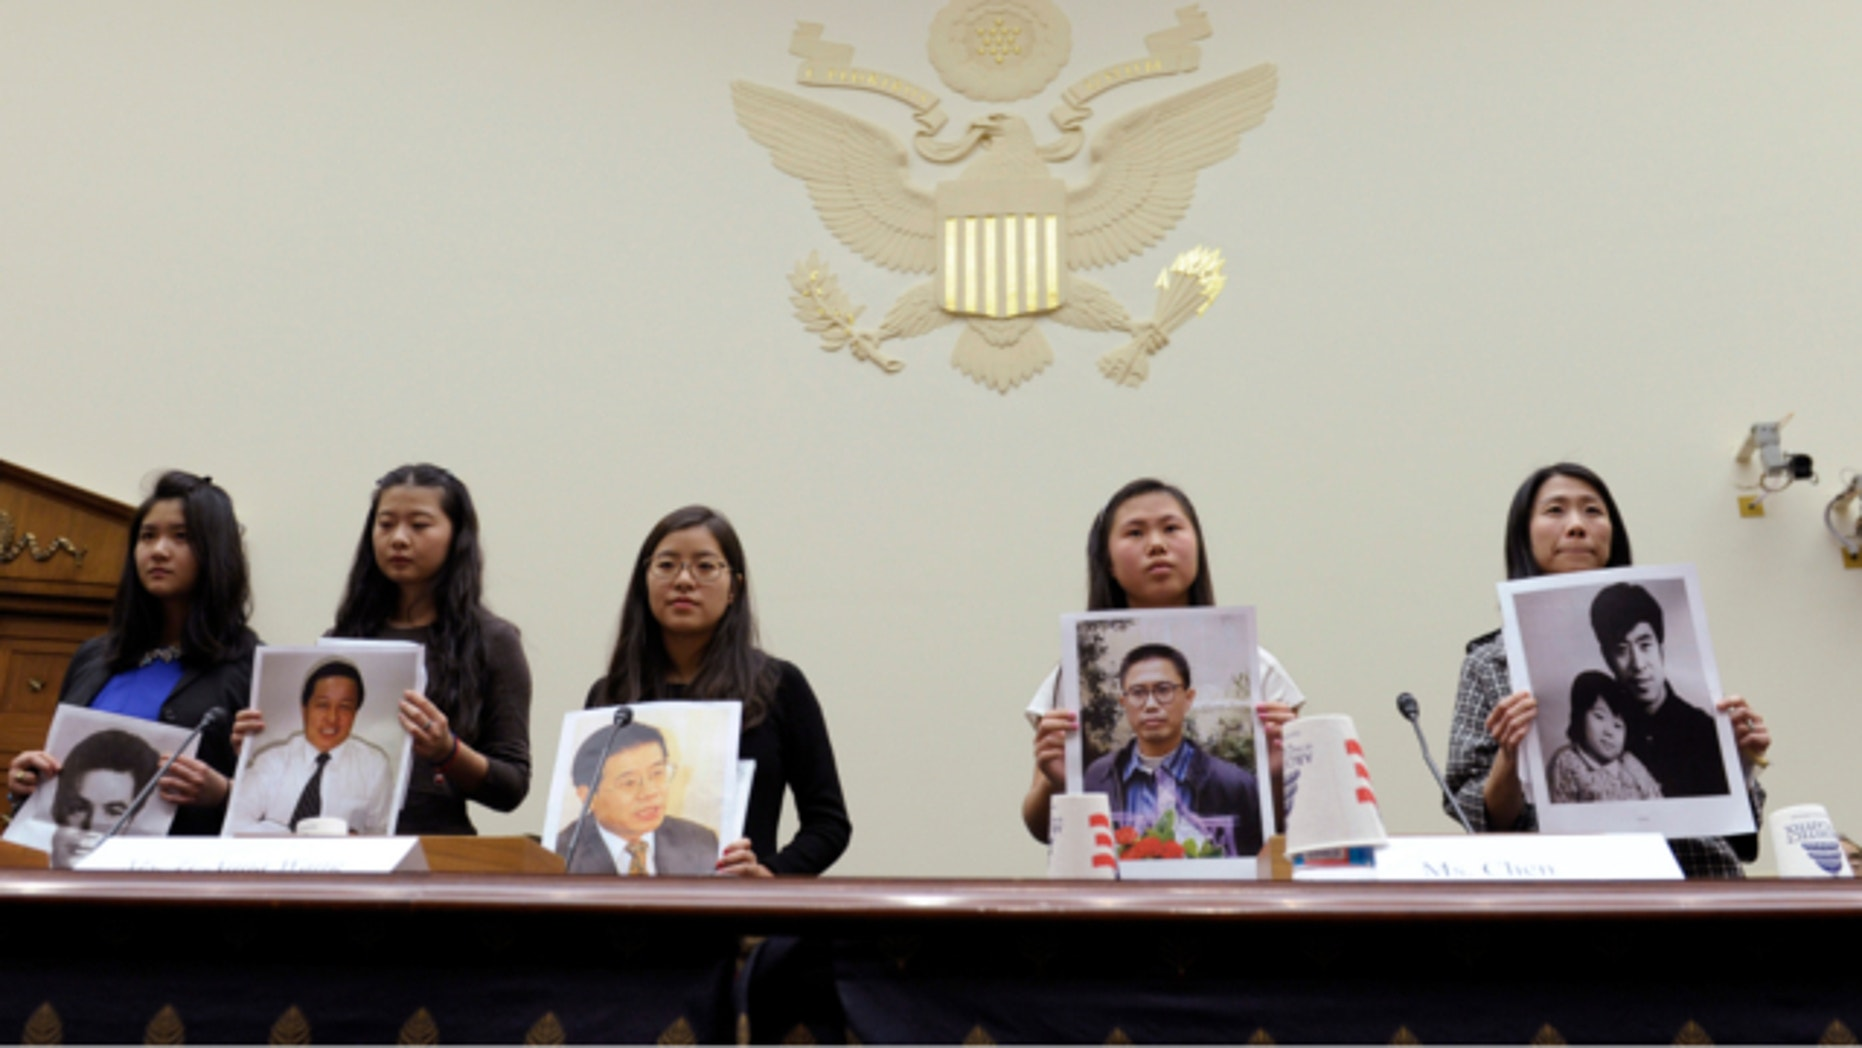 """Dec. 5, 2013: From left, Lisa Peng, holding a photo of her father Peng Ming, Grace Ge Geng, holding photo of her father Gao Zhisheng, Ti-Anna Wang, holding photo of her father Wang Bingzhang, Bridgette Chen holding photo of her father Liu Xianbing, and Danielle Wang, holding photo of her father Wang Zhiwen, are introduced prior to testifying before the House Foreign Affairs Committee hearing entitled, """"Their Daughters Appeal to Beijing: 'Let Our Fathers Go,! on Capitol Hill in Washington."""